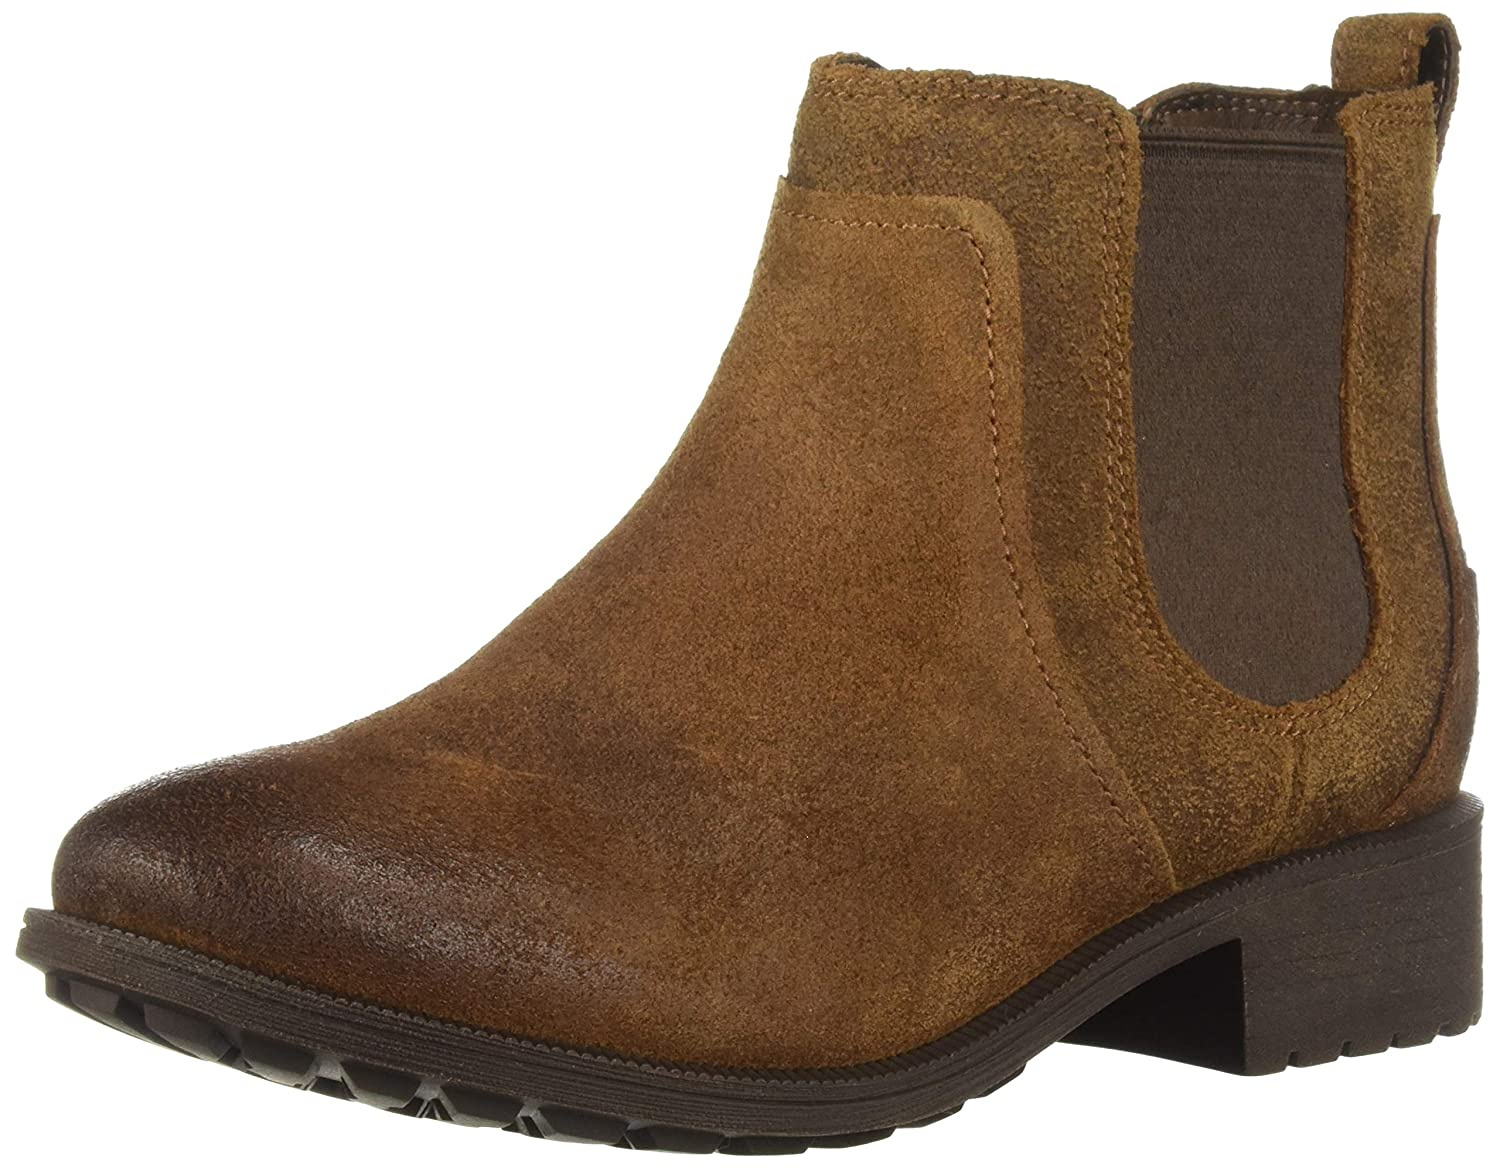 383a1089383 UGG Women's W Bonham Boot Ii Fashion